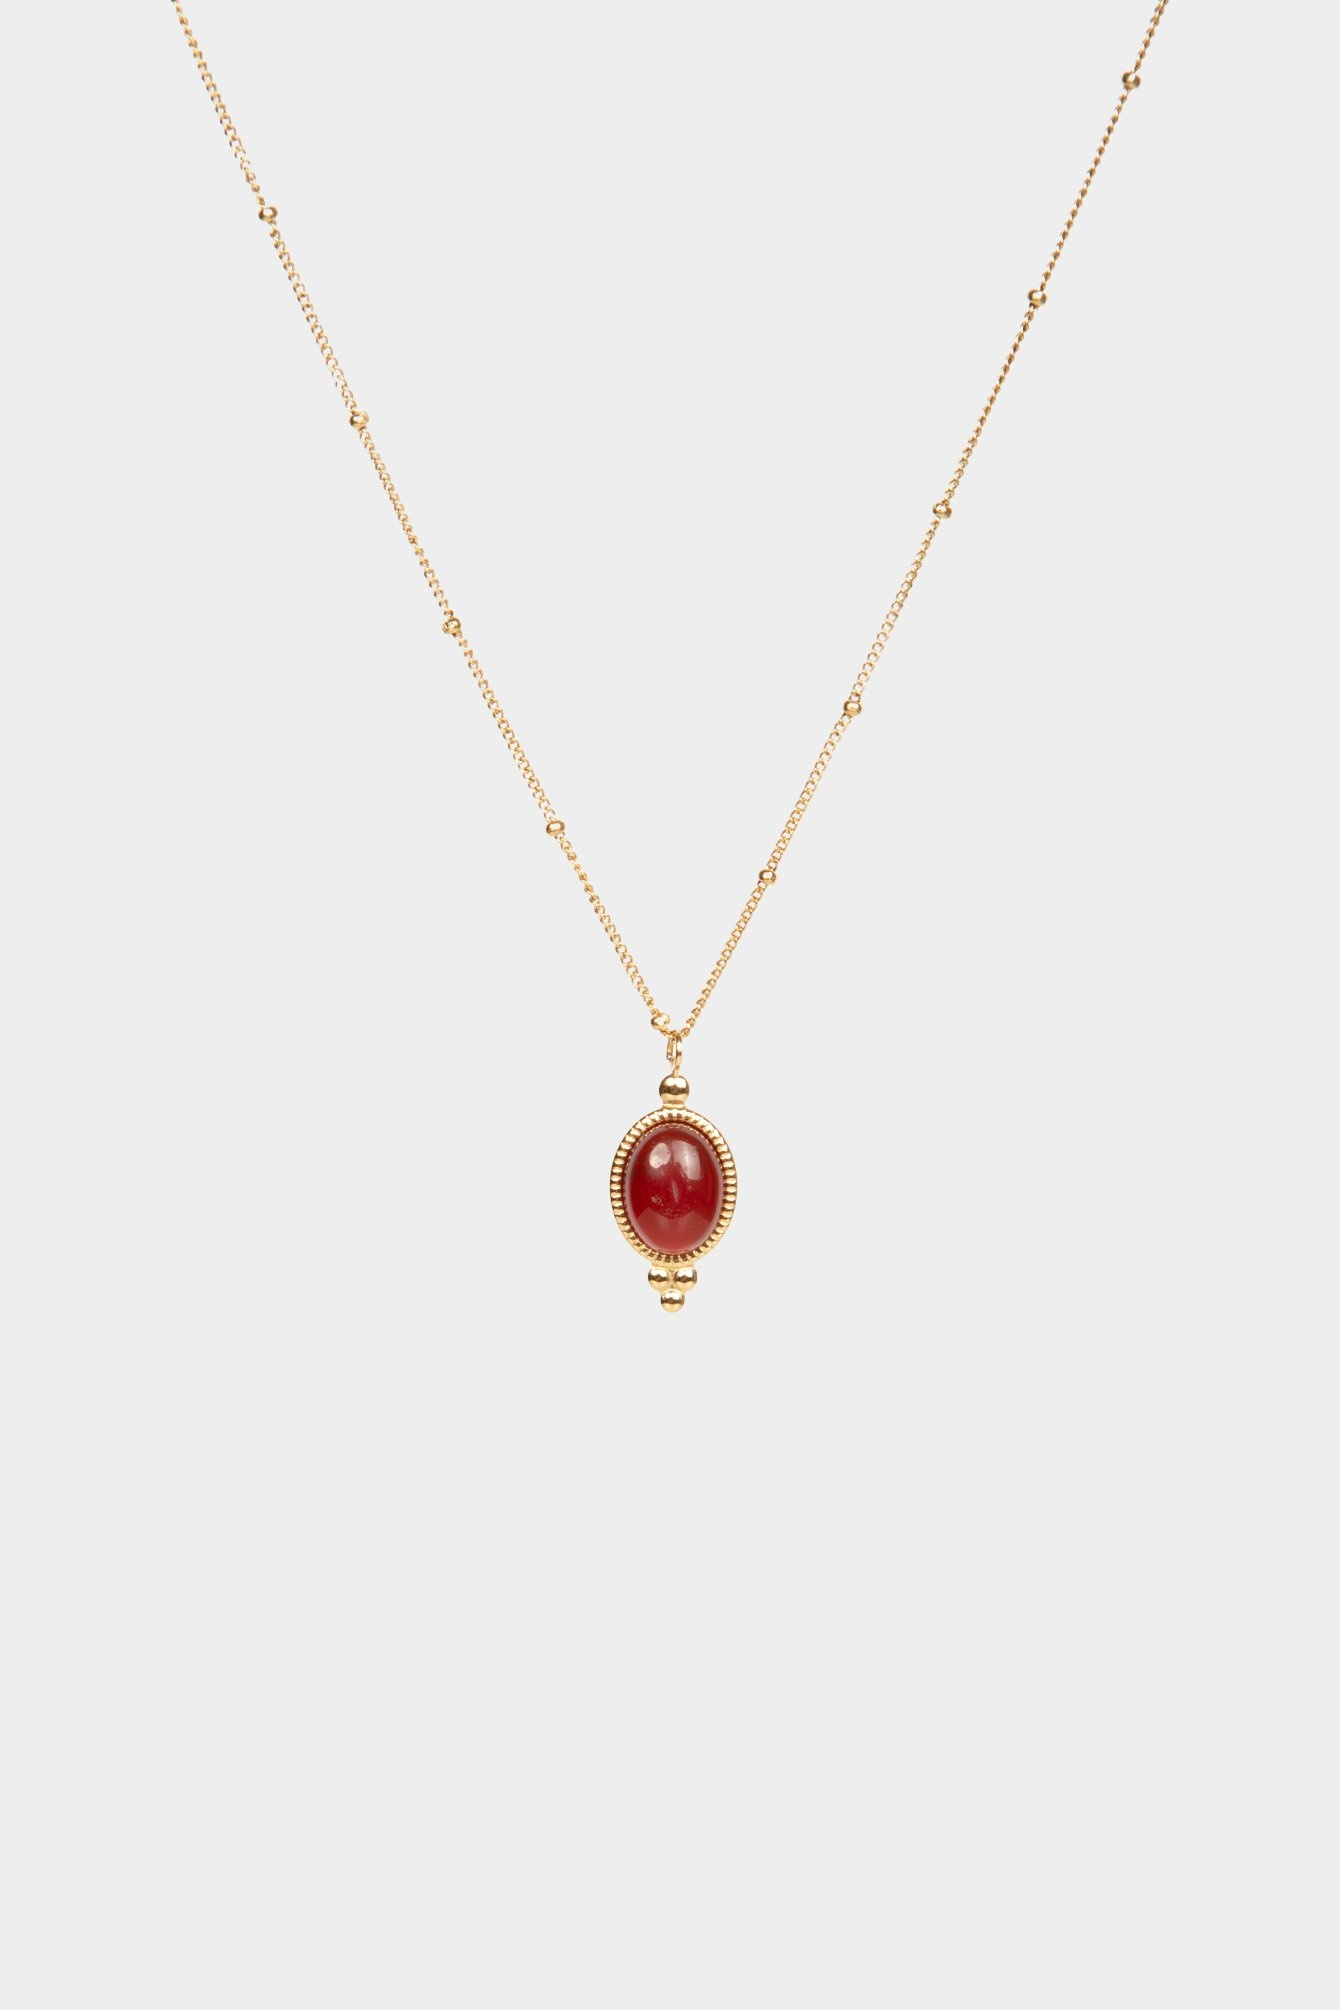 Stone red necklace